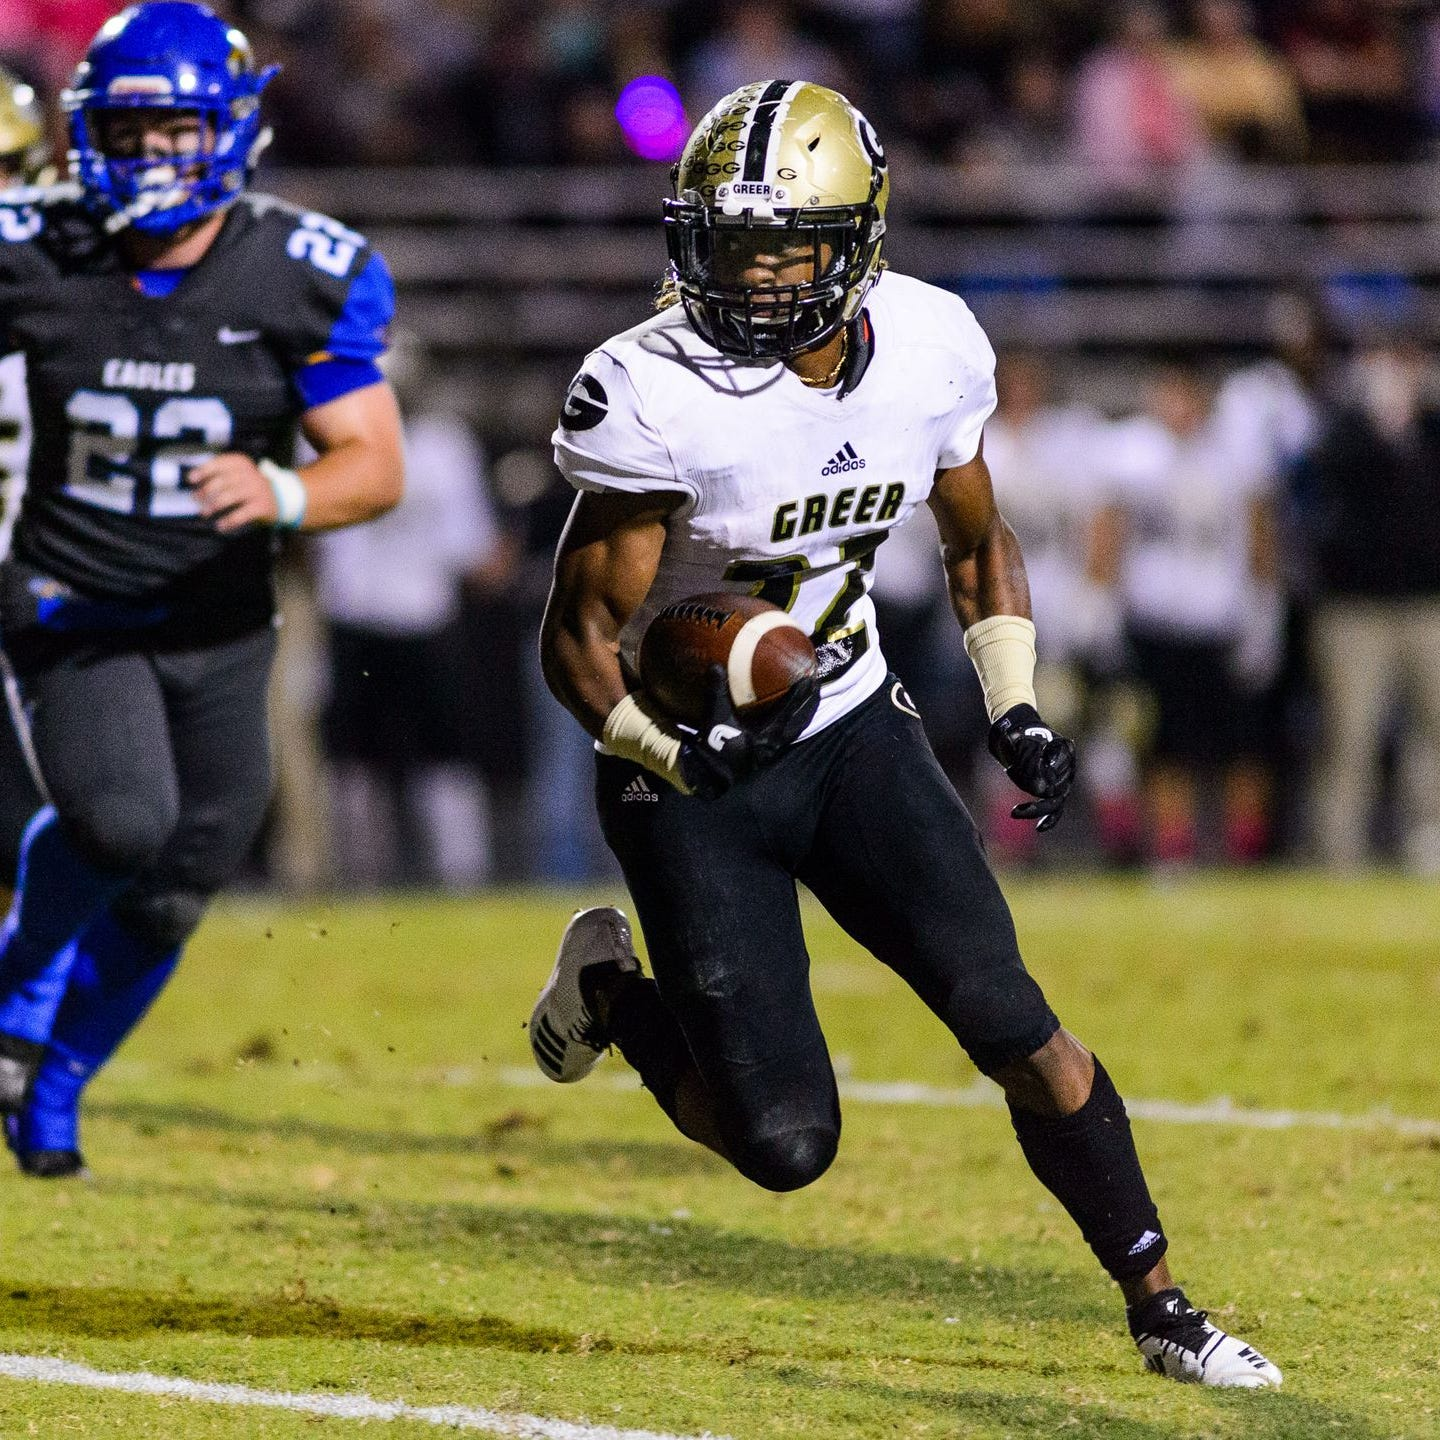 Greer's Dre Williams, right, turns the corner to score on a 14-yard run in the second quarter of the Yellow Jackets' 59-28 win over Eastside Friday night.